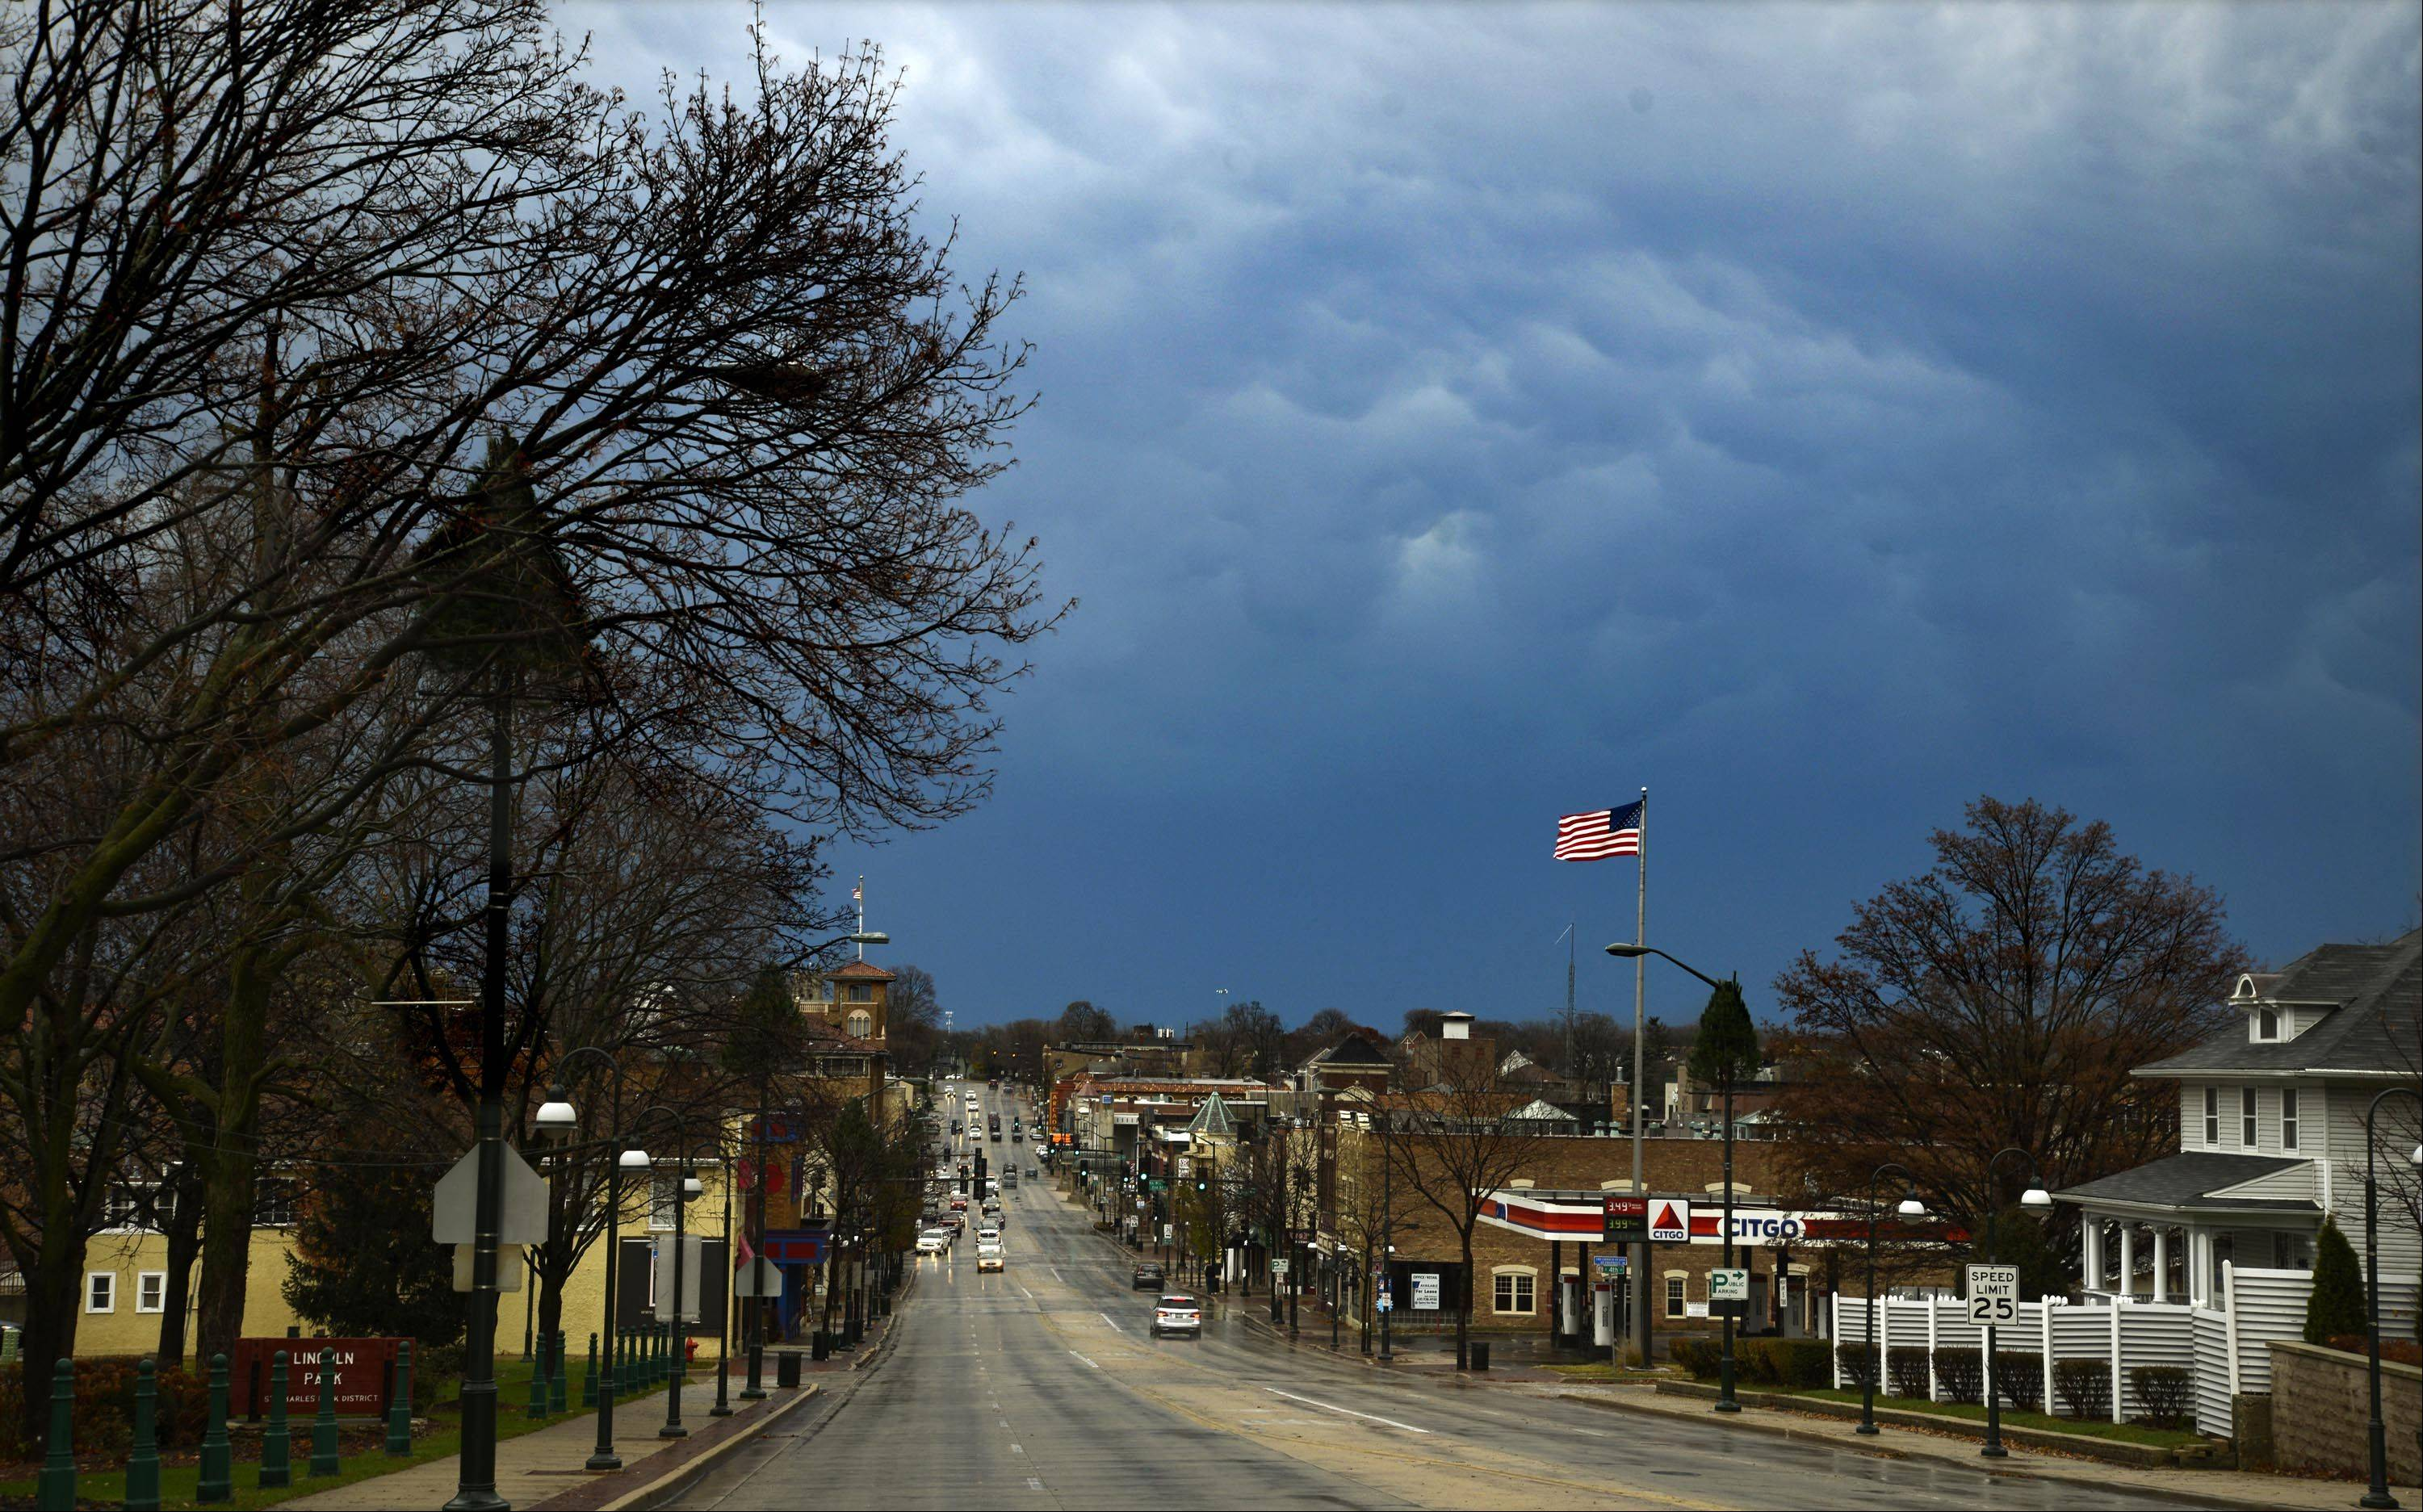 The eastern sky turns a cloudy blue over St. Charles yesterday afternoon.